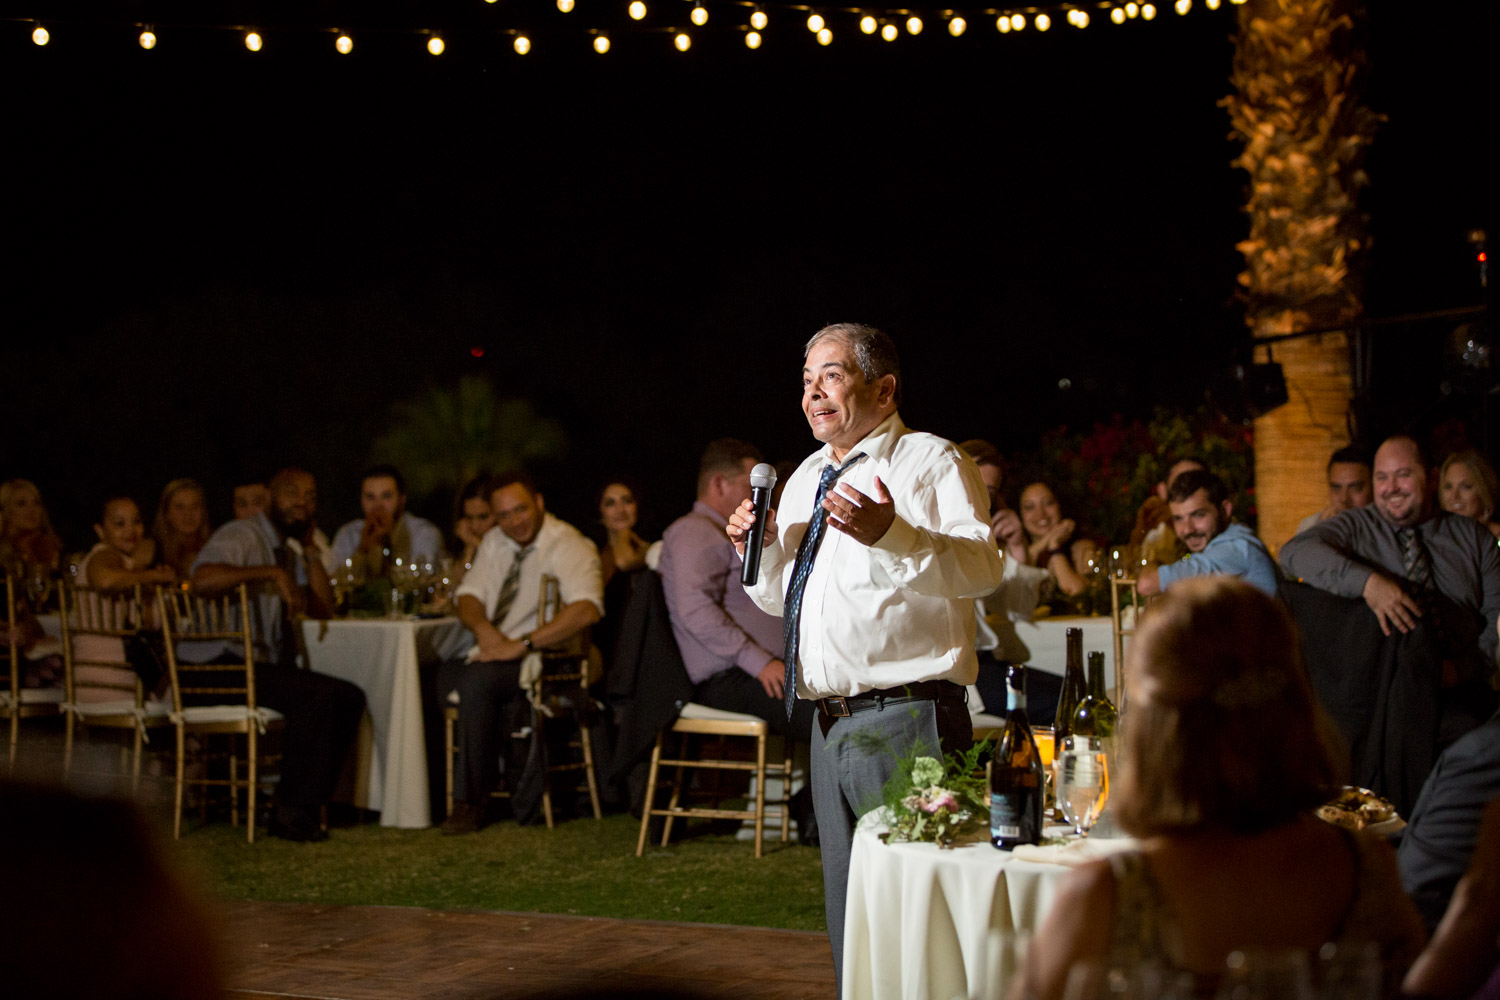 Father of the groom giving a wedding toast, Cavin ELizabeth Photography